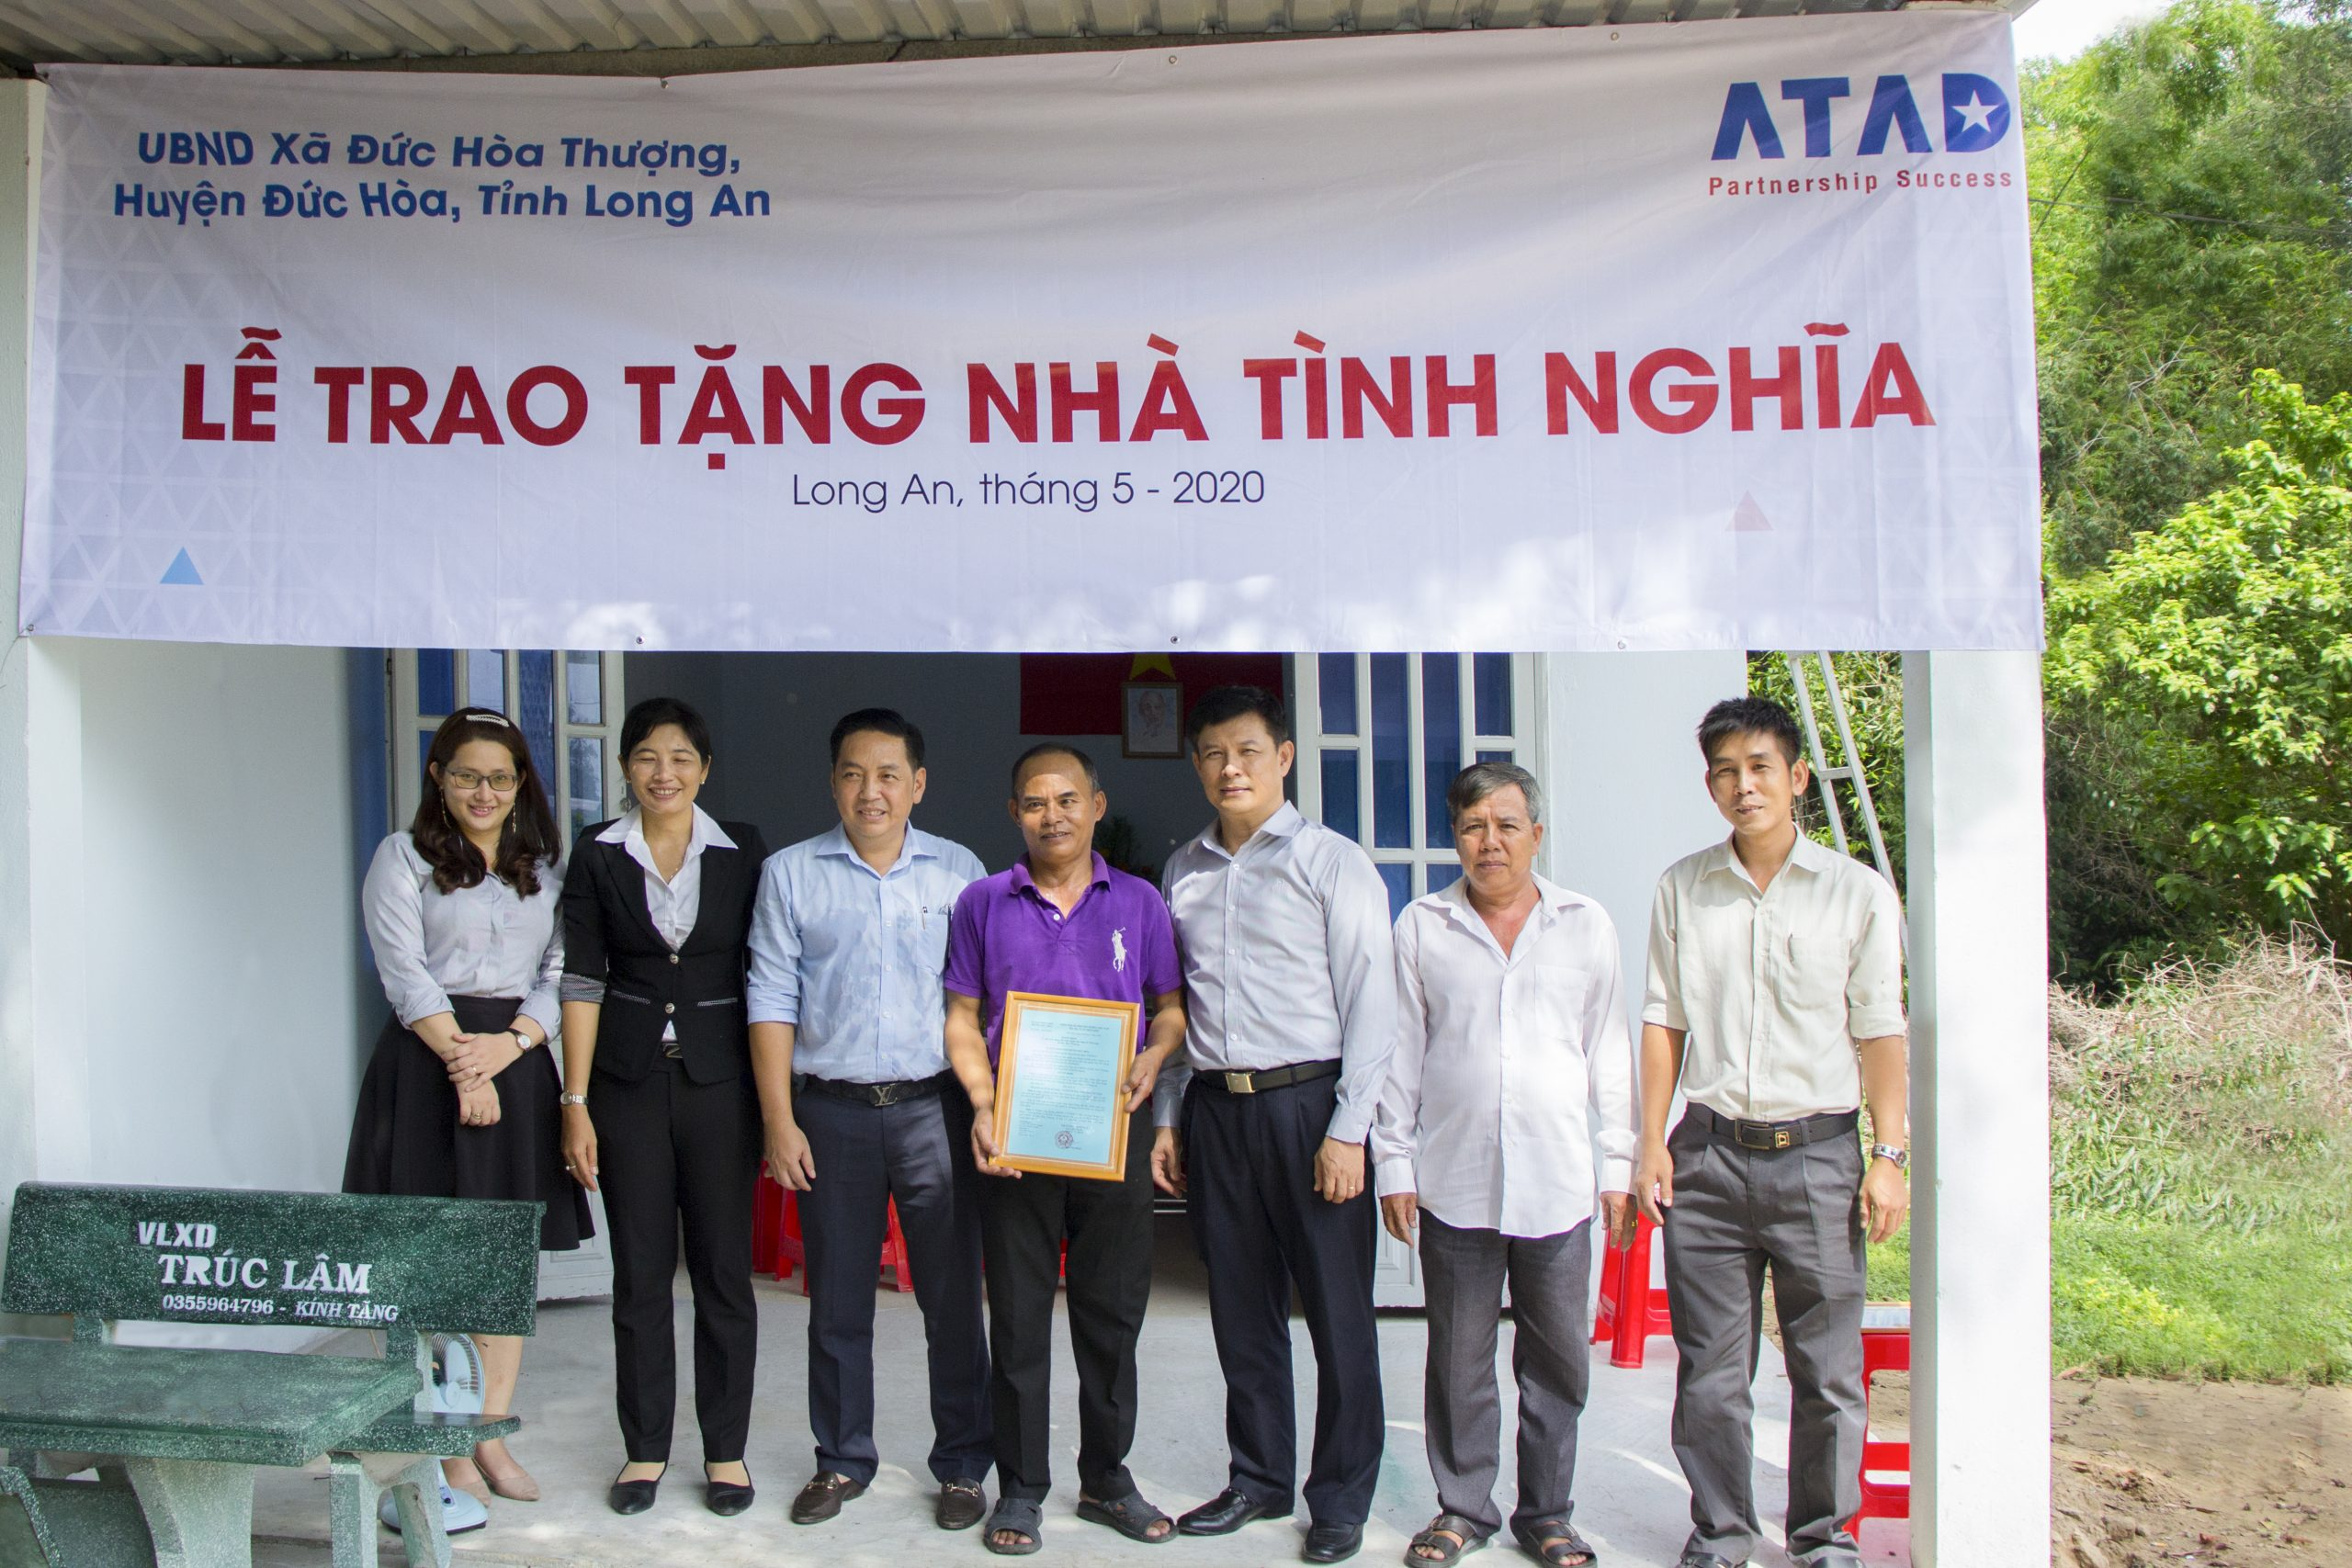 ATAD presented houses of gratitude in Duc Hoa district, Long An province 1